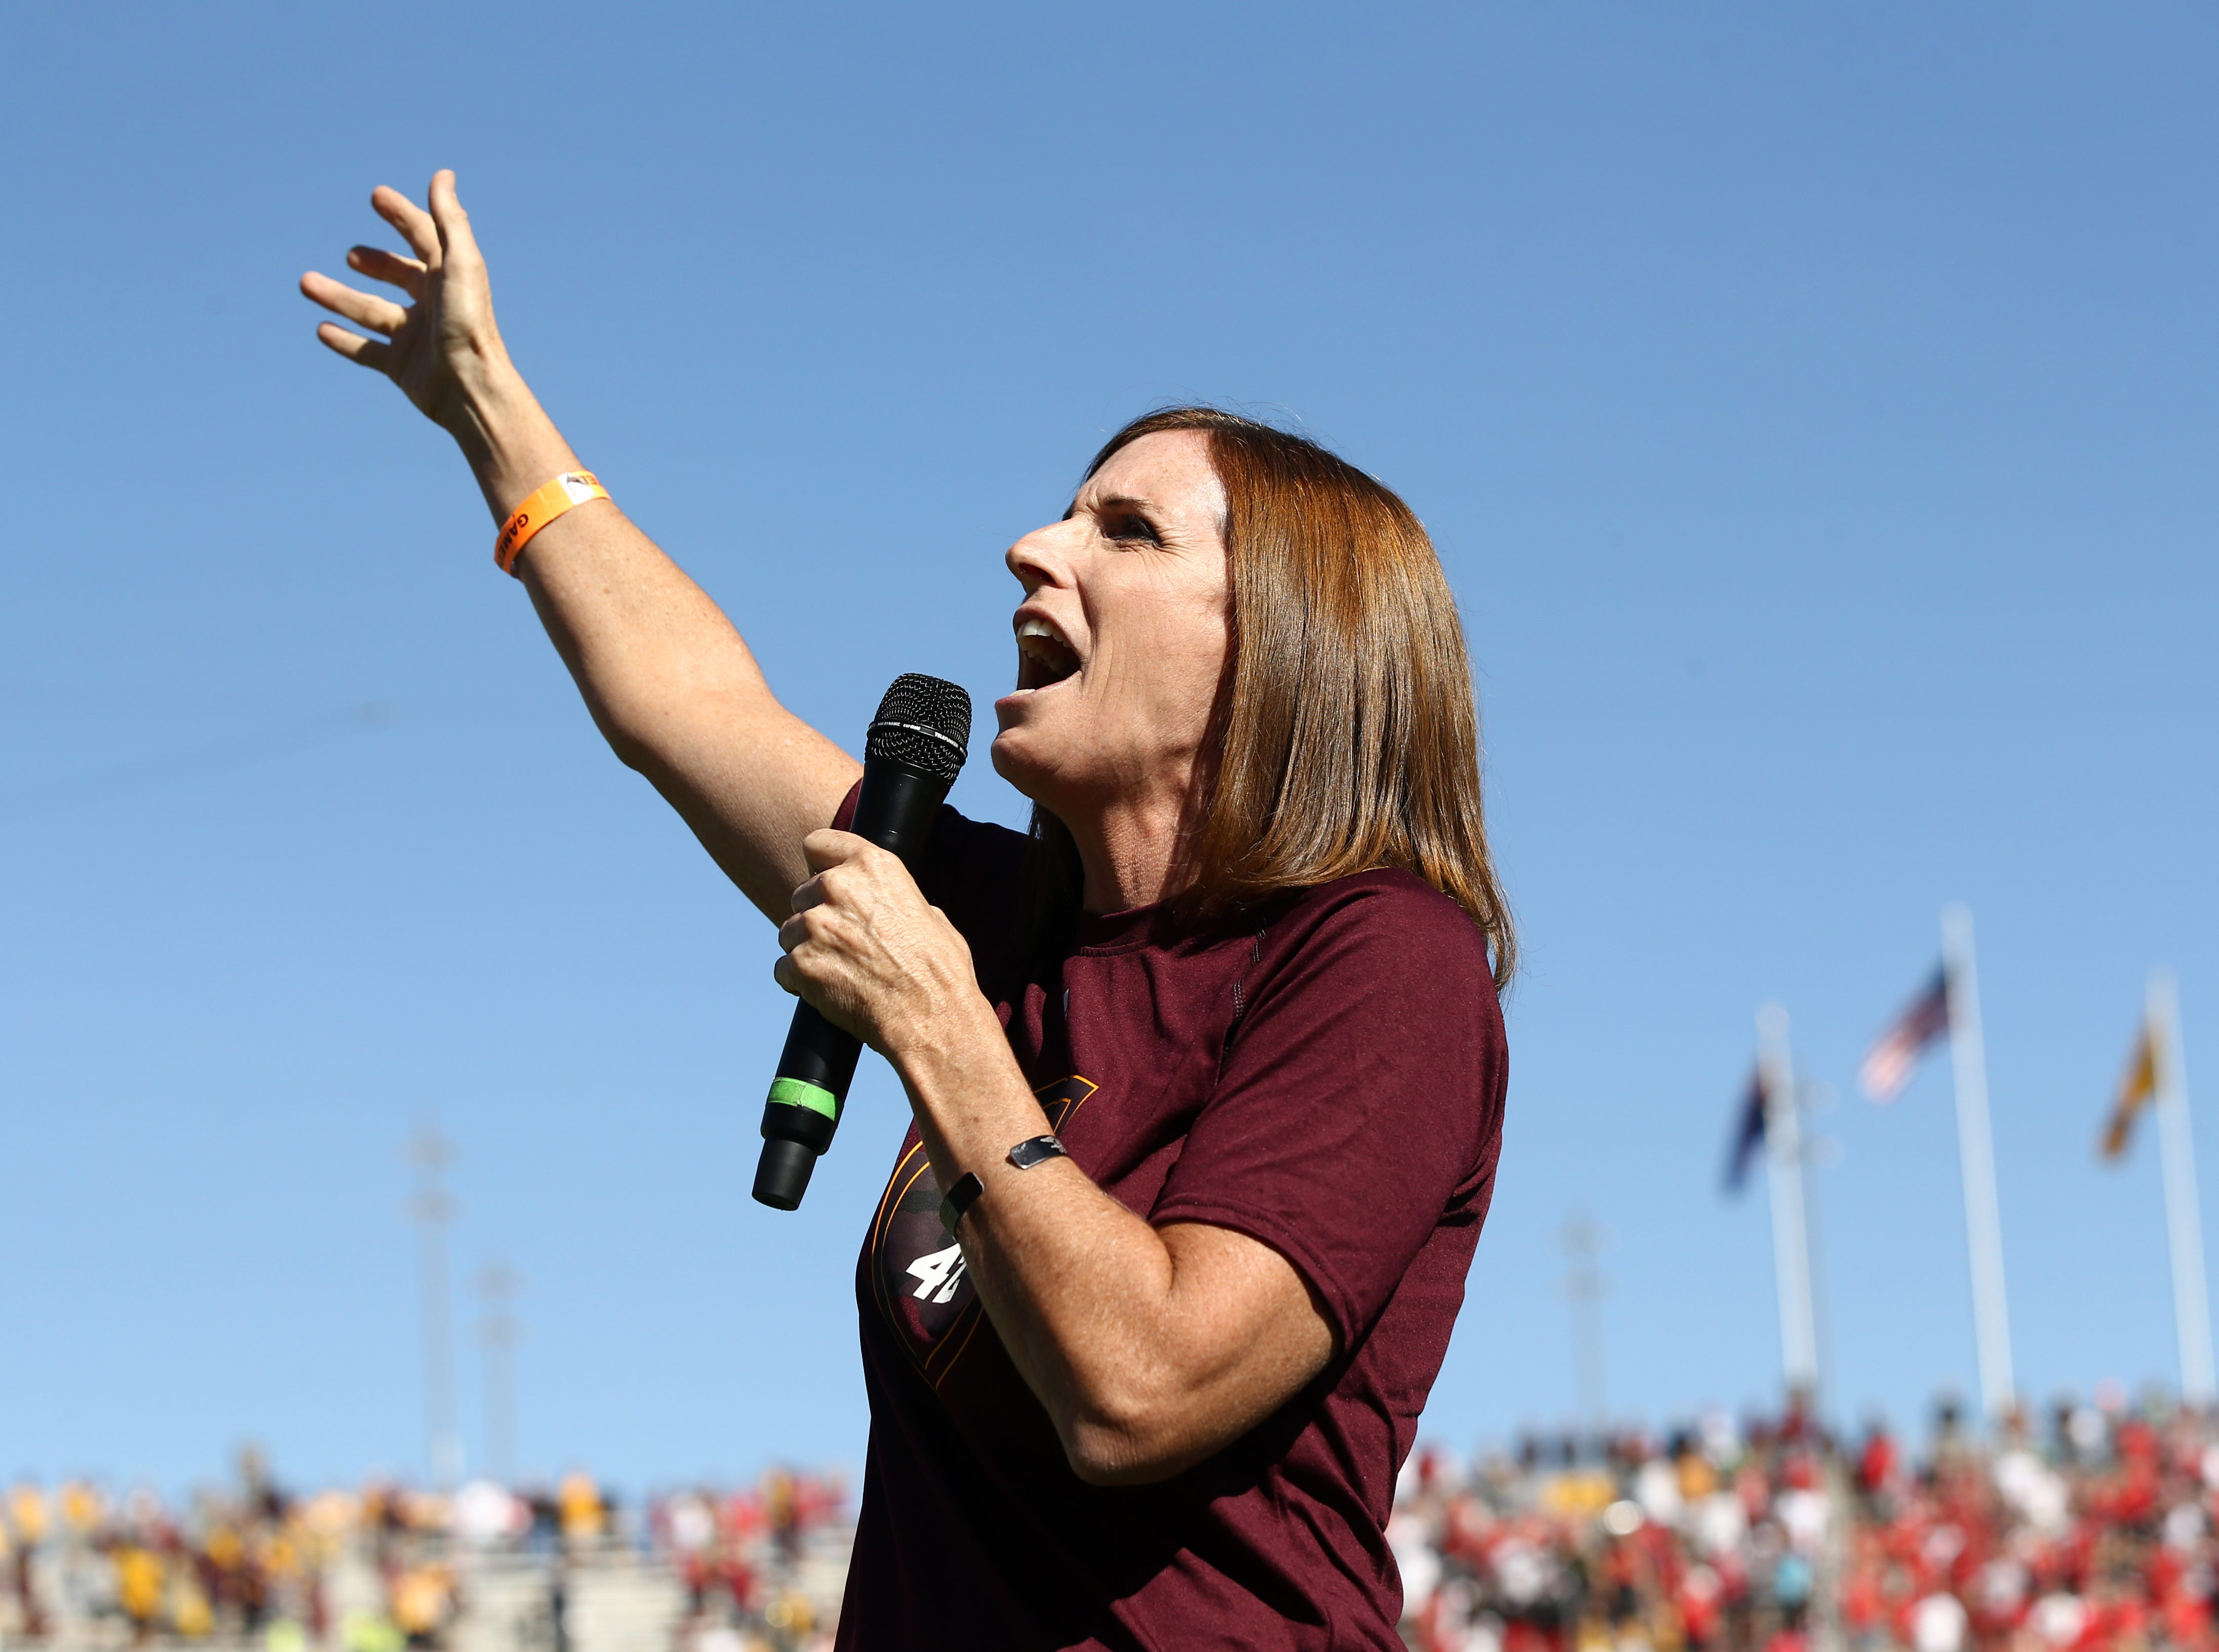 U.S. Rep. Martha McSally, R-Ariz., sings the national anthem at the Utah vs. ASU game on Nov. 3 at Sun Devil Stadium. McSally is running against Democrat Krysten Sinema for the U.S. Senate.